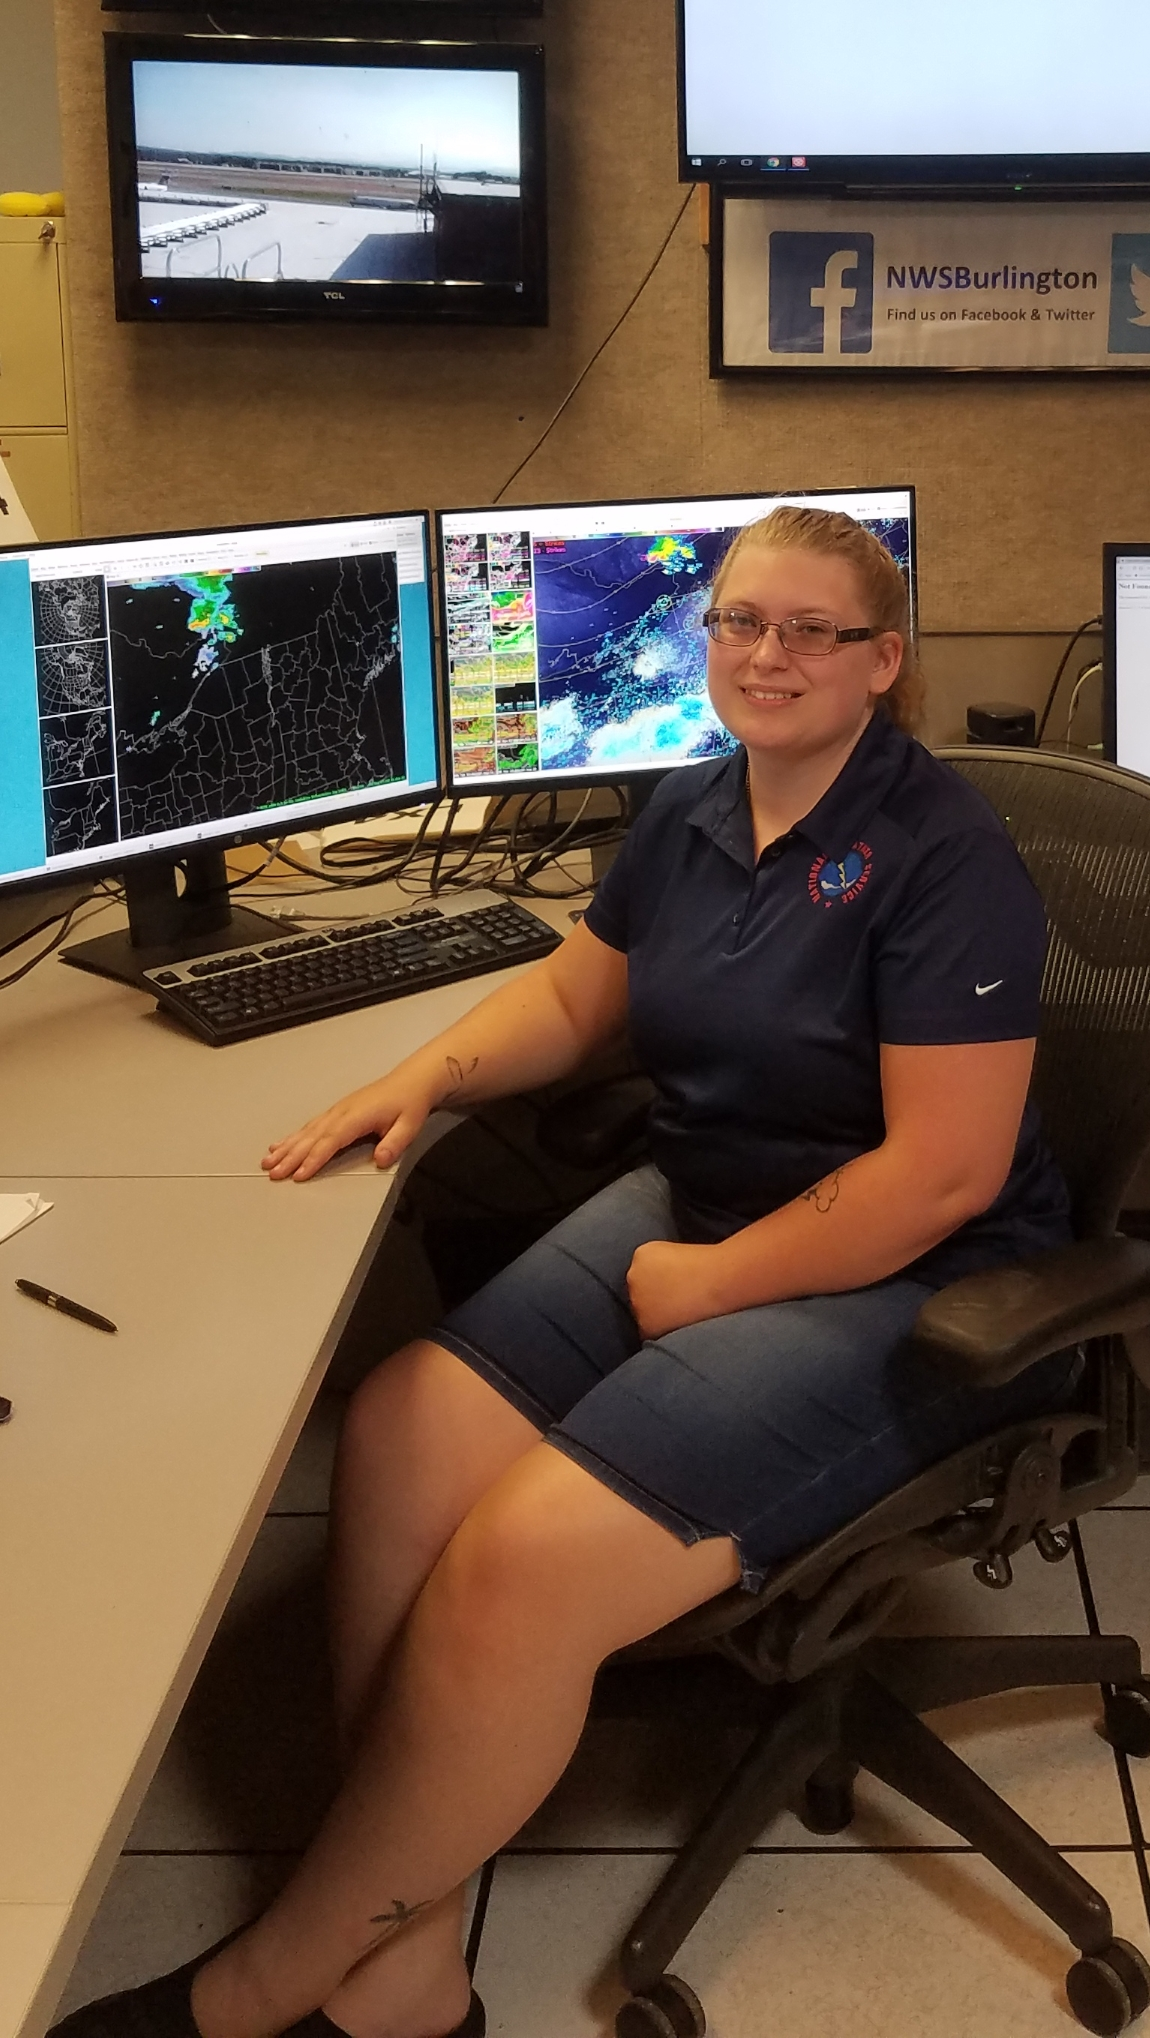 Sarah Sickles worked as an intern at the National Weather Service in Burlington, VT